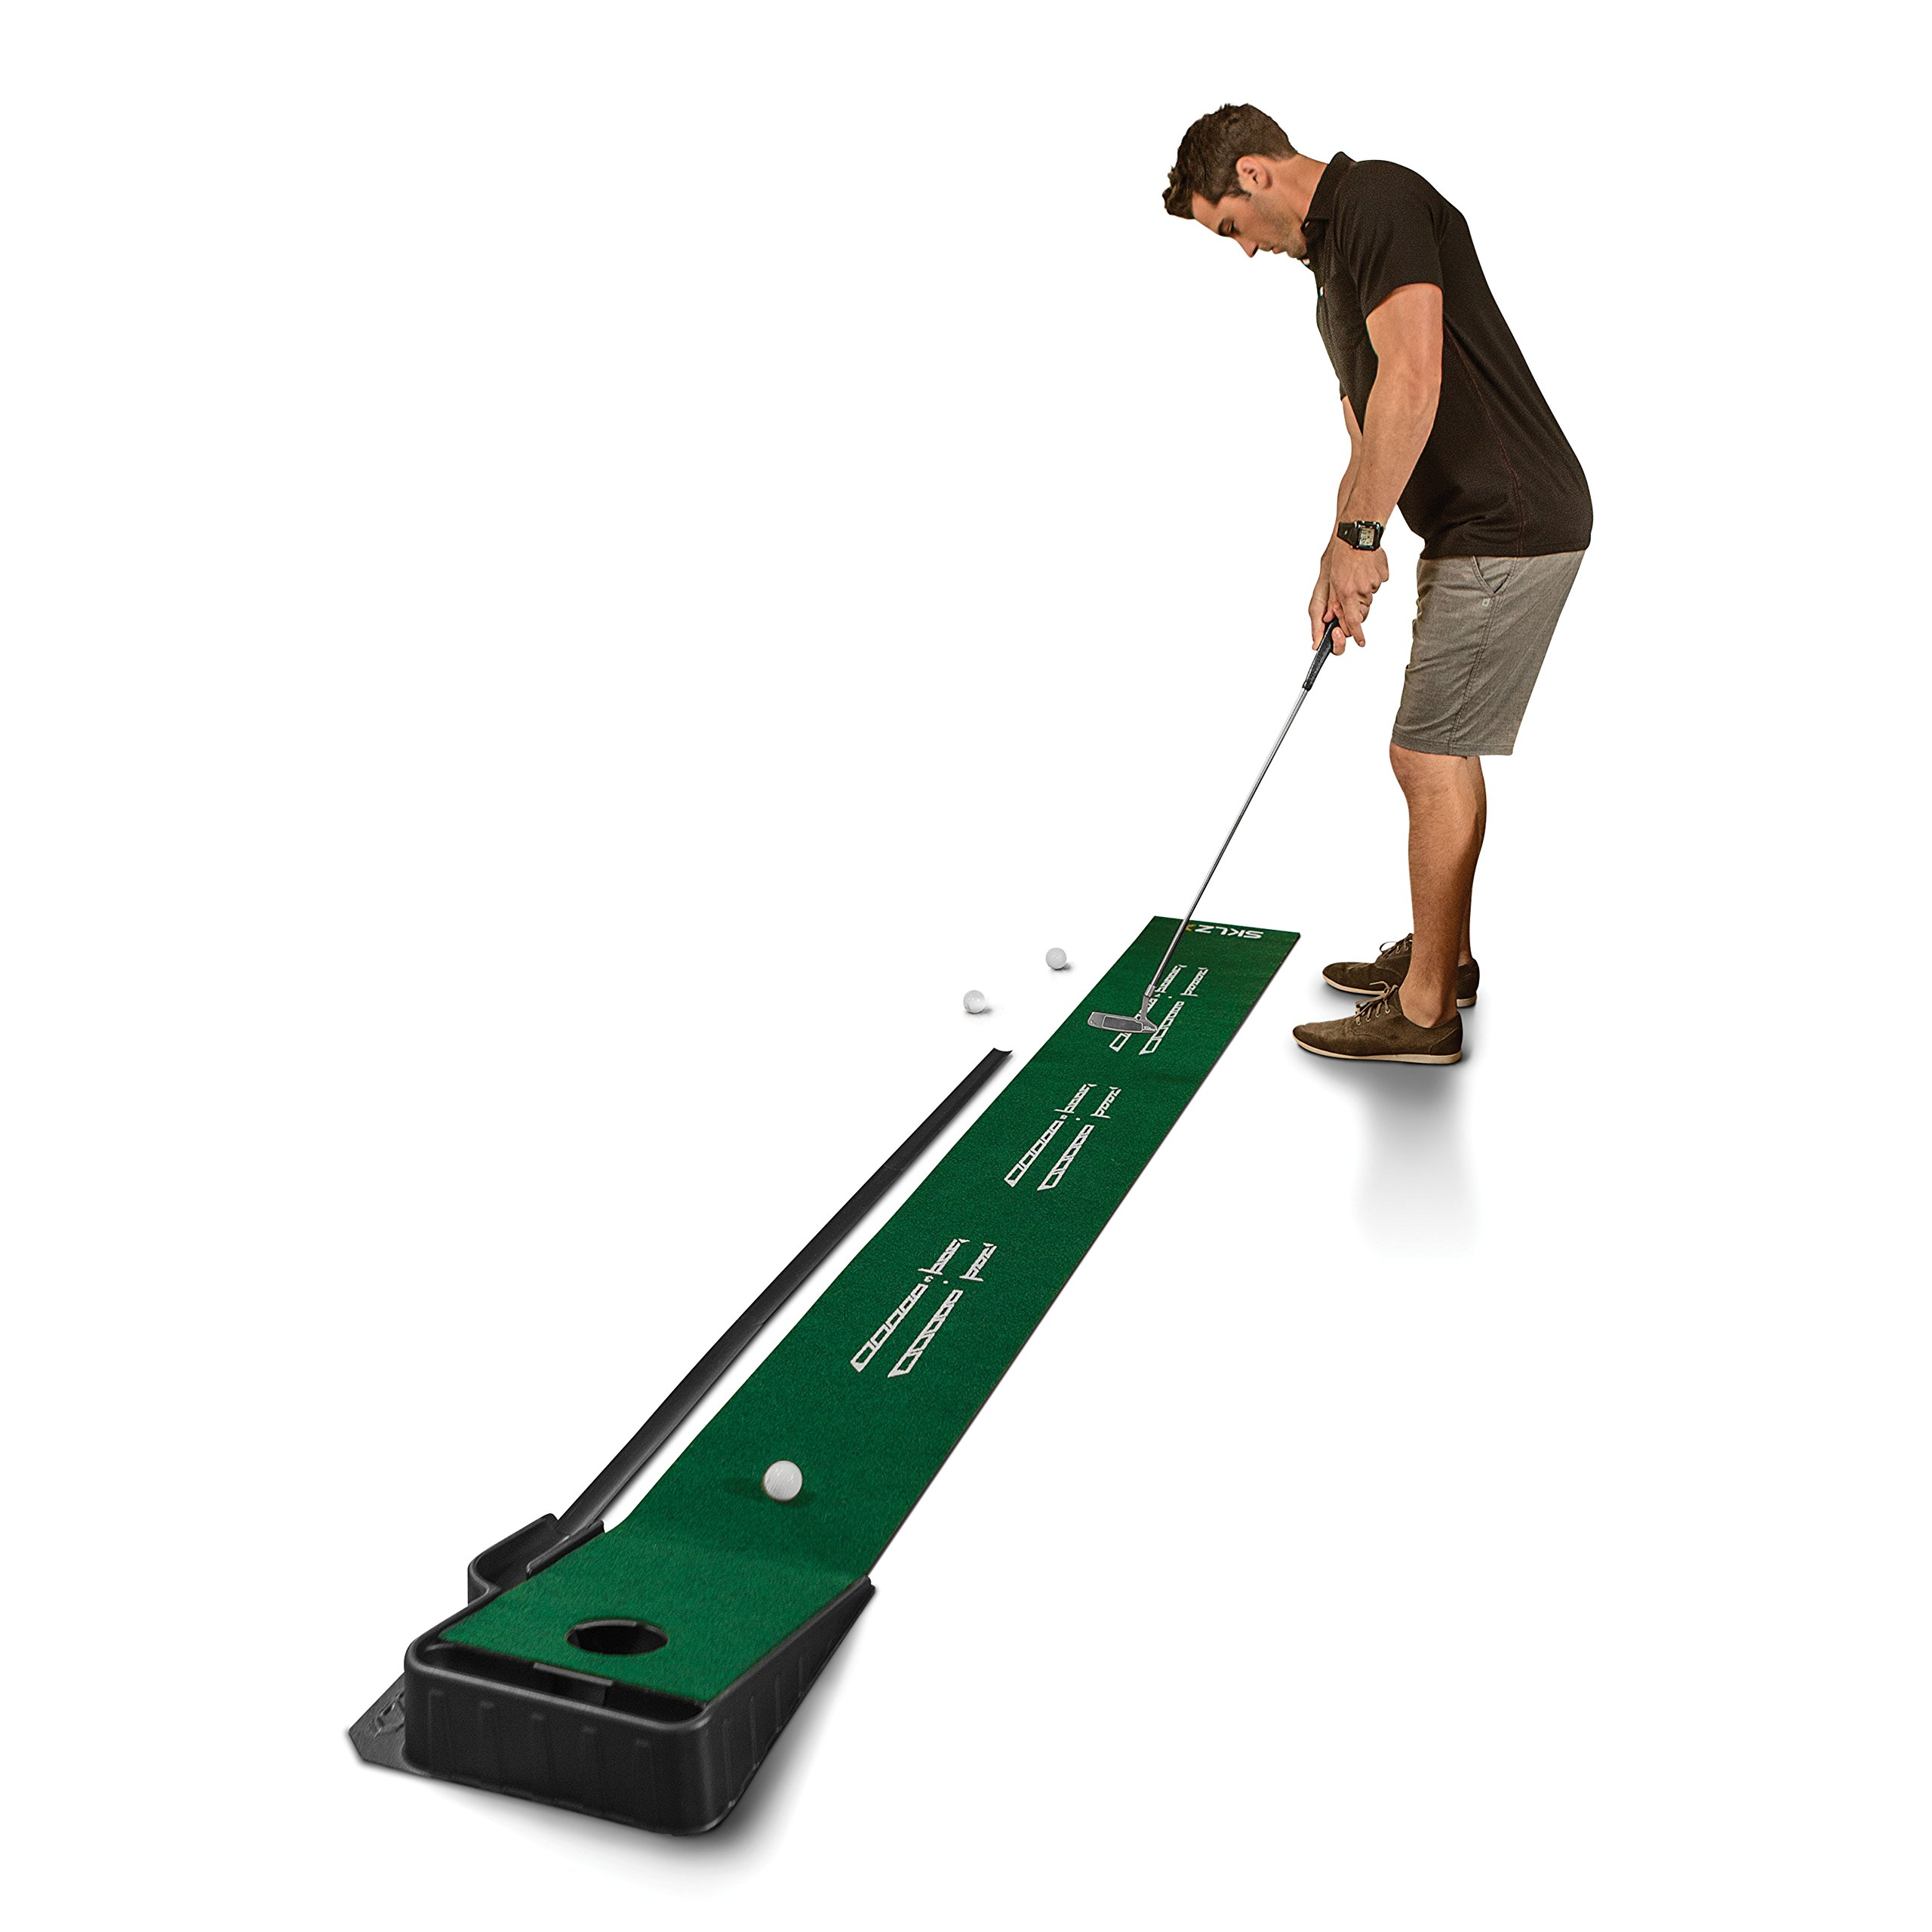 SKLZ Accelerator Pro Indoor Putting Green with Ball Return, 9 feet x 16.25 inches by SKLZ